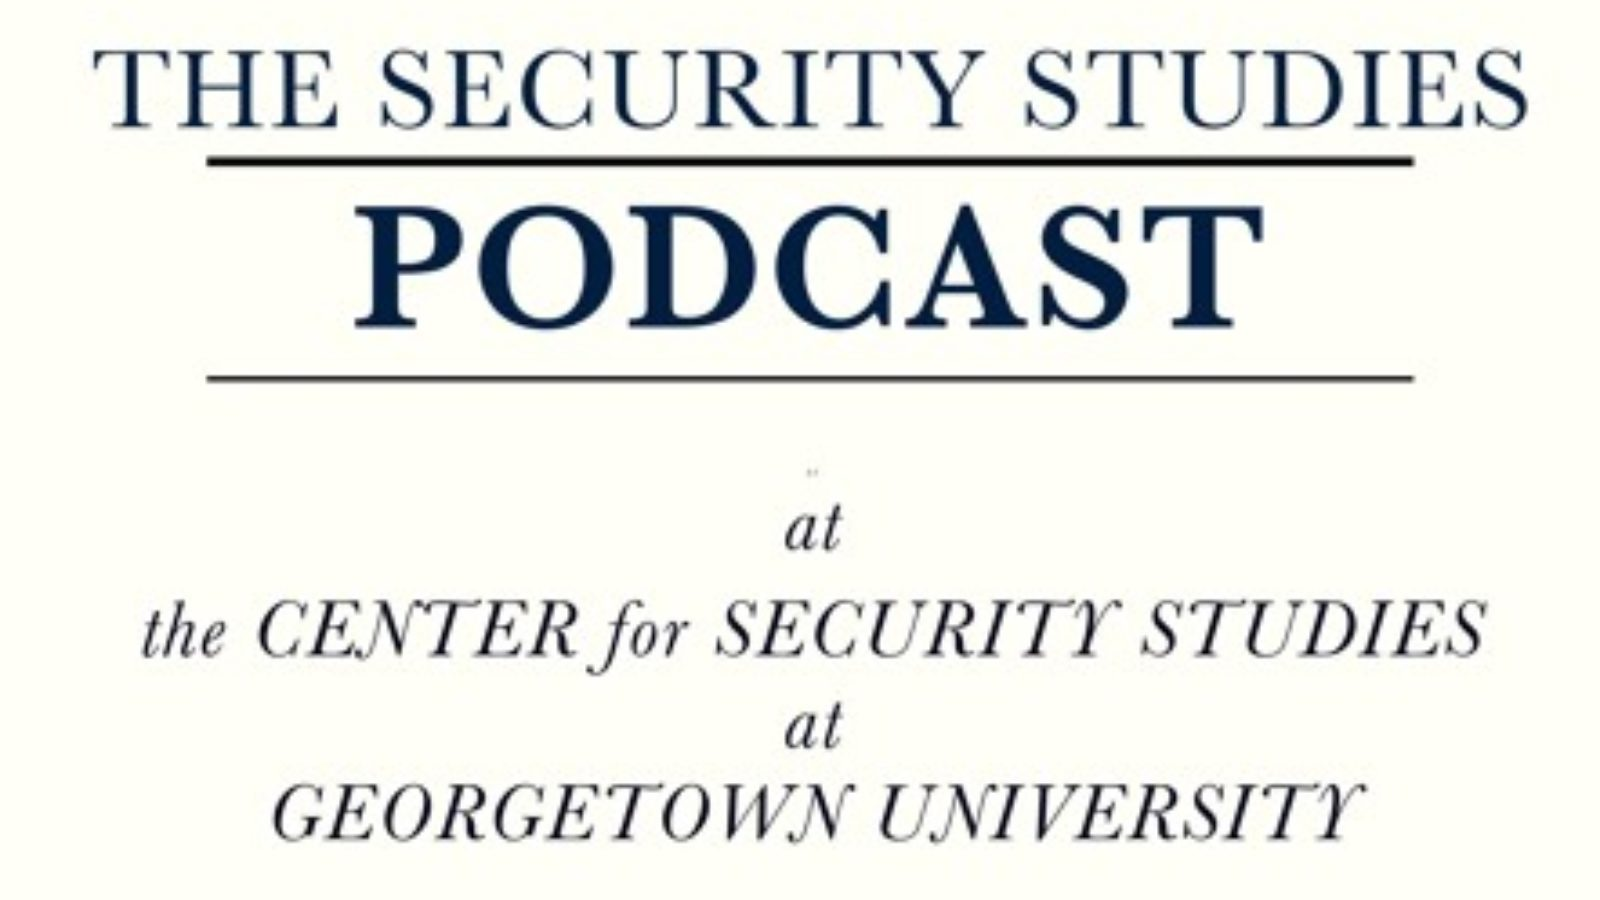 The Security Studies Podcast at the Center for Security Studies at Georgetown University